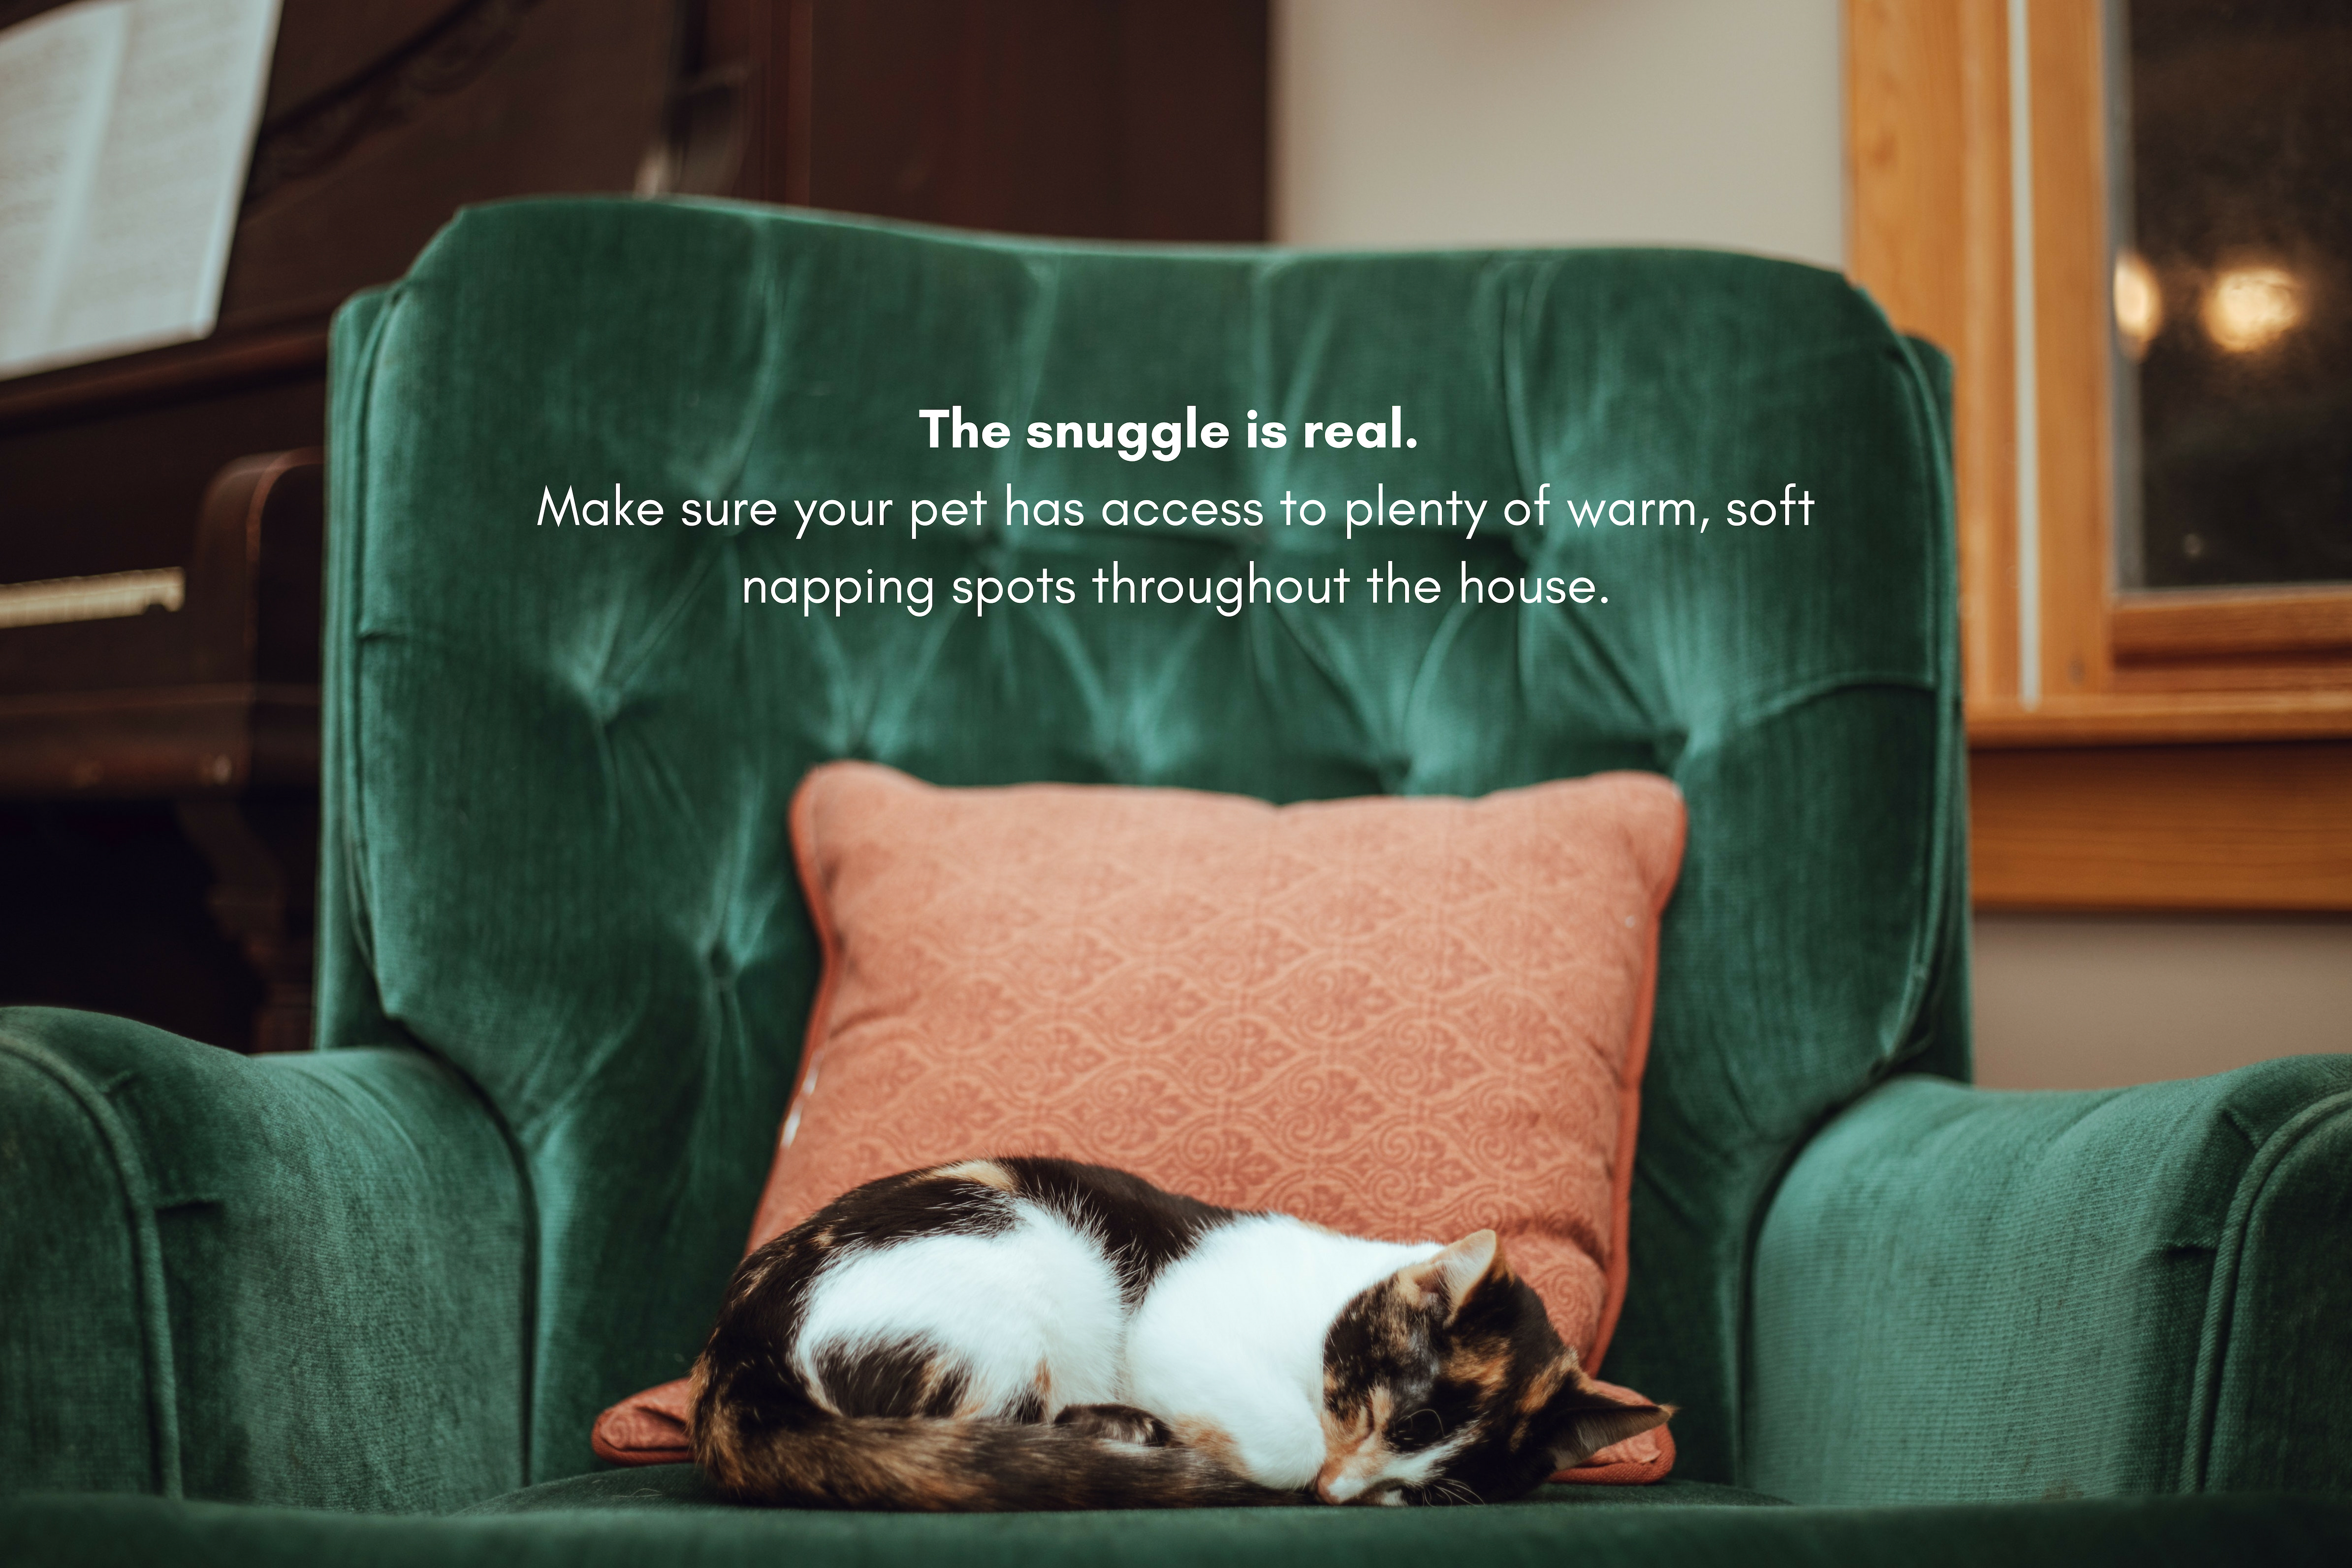 Make sure your pet has access to plenty of warm, soft napping spots throughout the house.